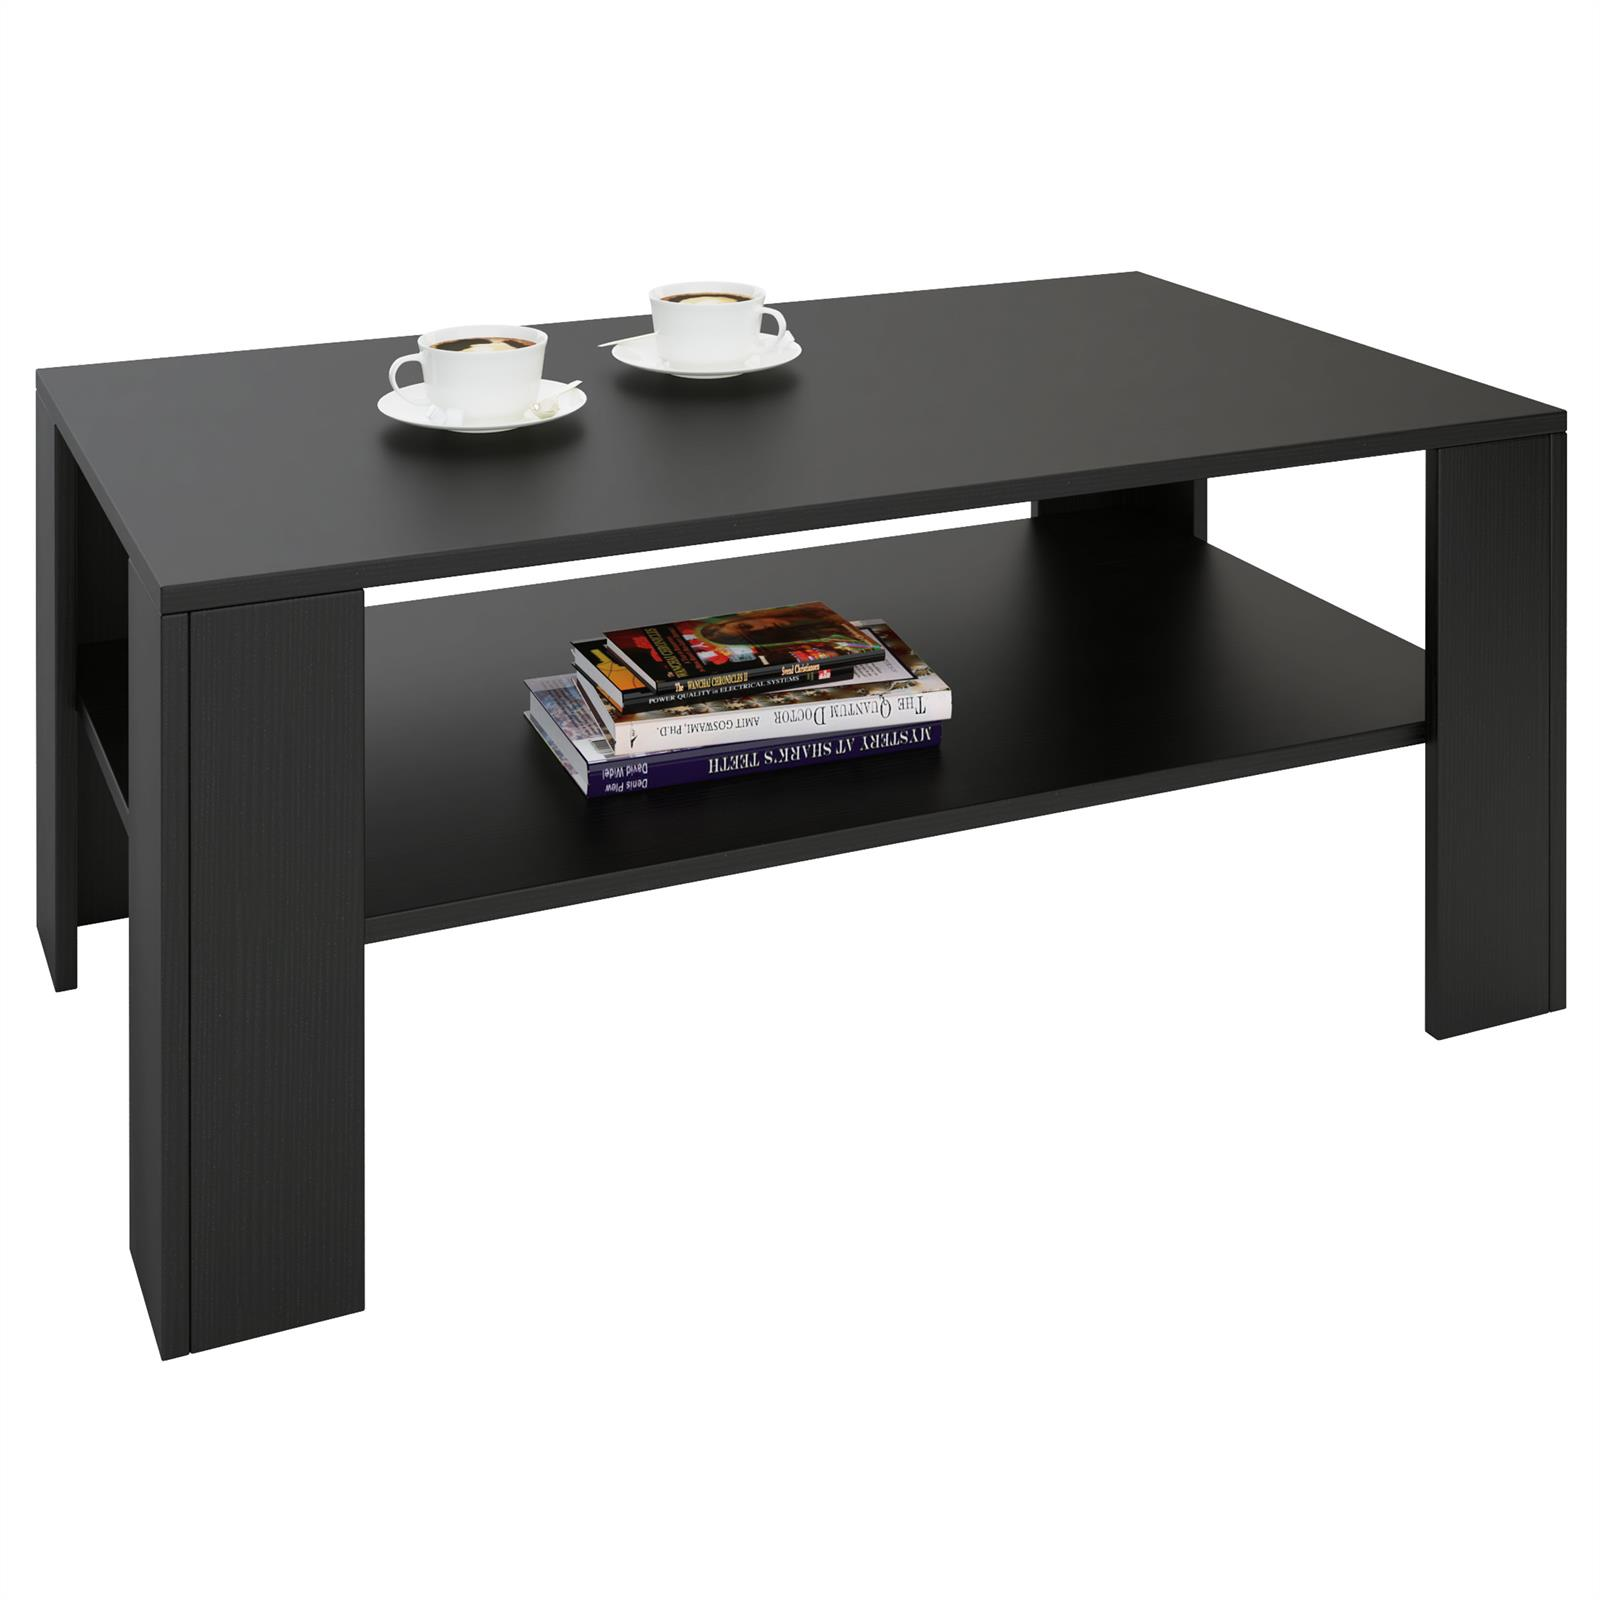 couchtisch animo in schwarz 100 x 60 cm caro m bel. Black Bedroom Furniture Sets. Home Design Ideas